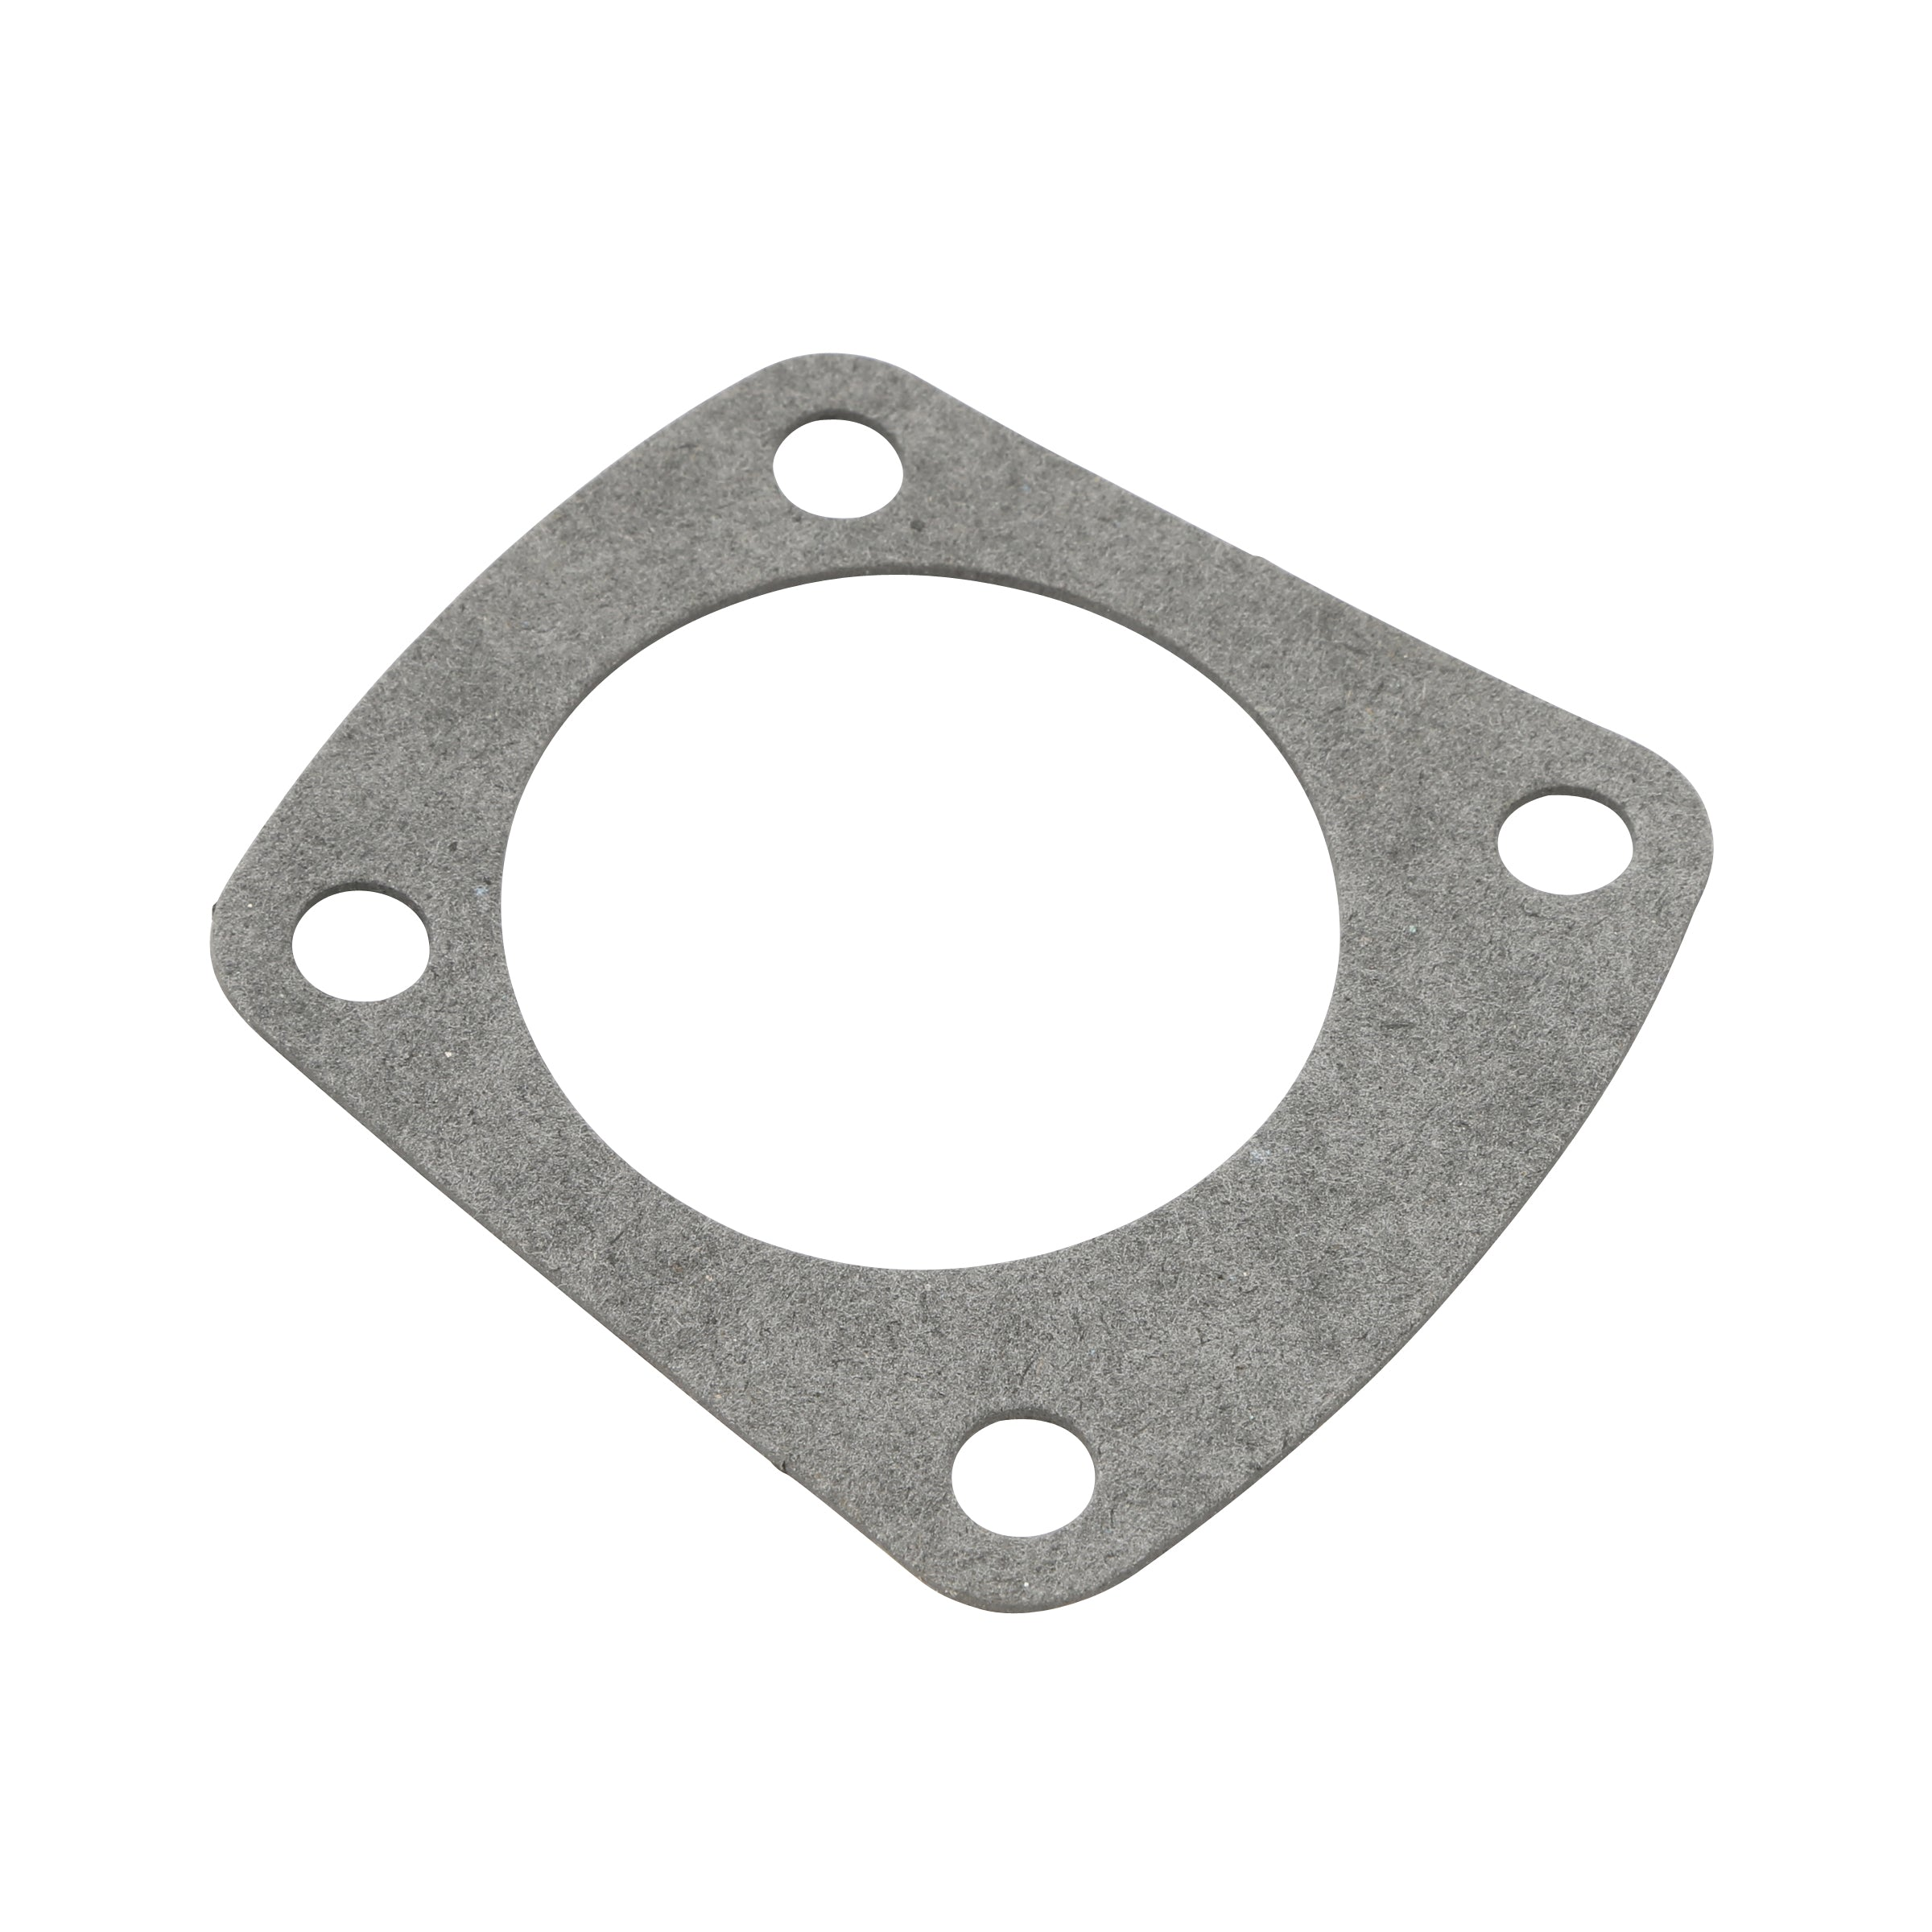 Water Pump Gasket • 1928-31 Model A Ford